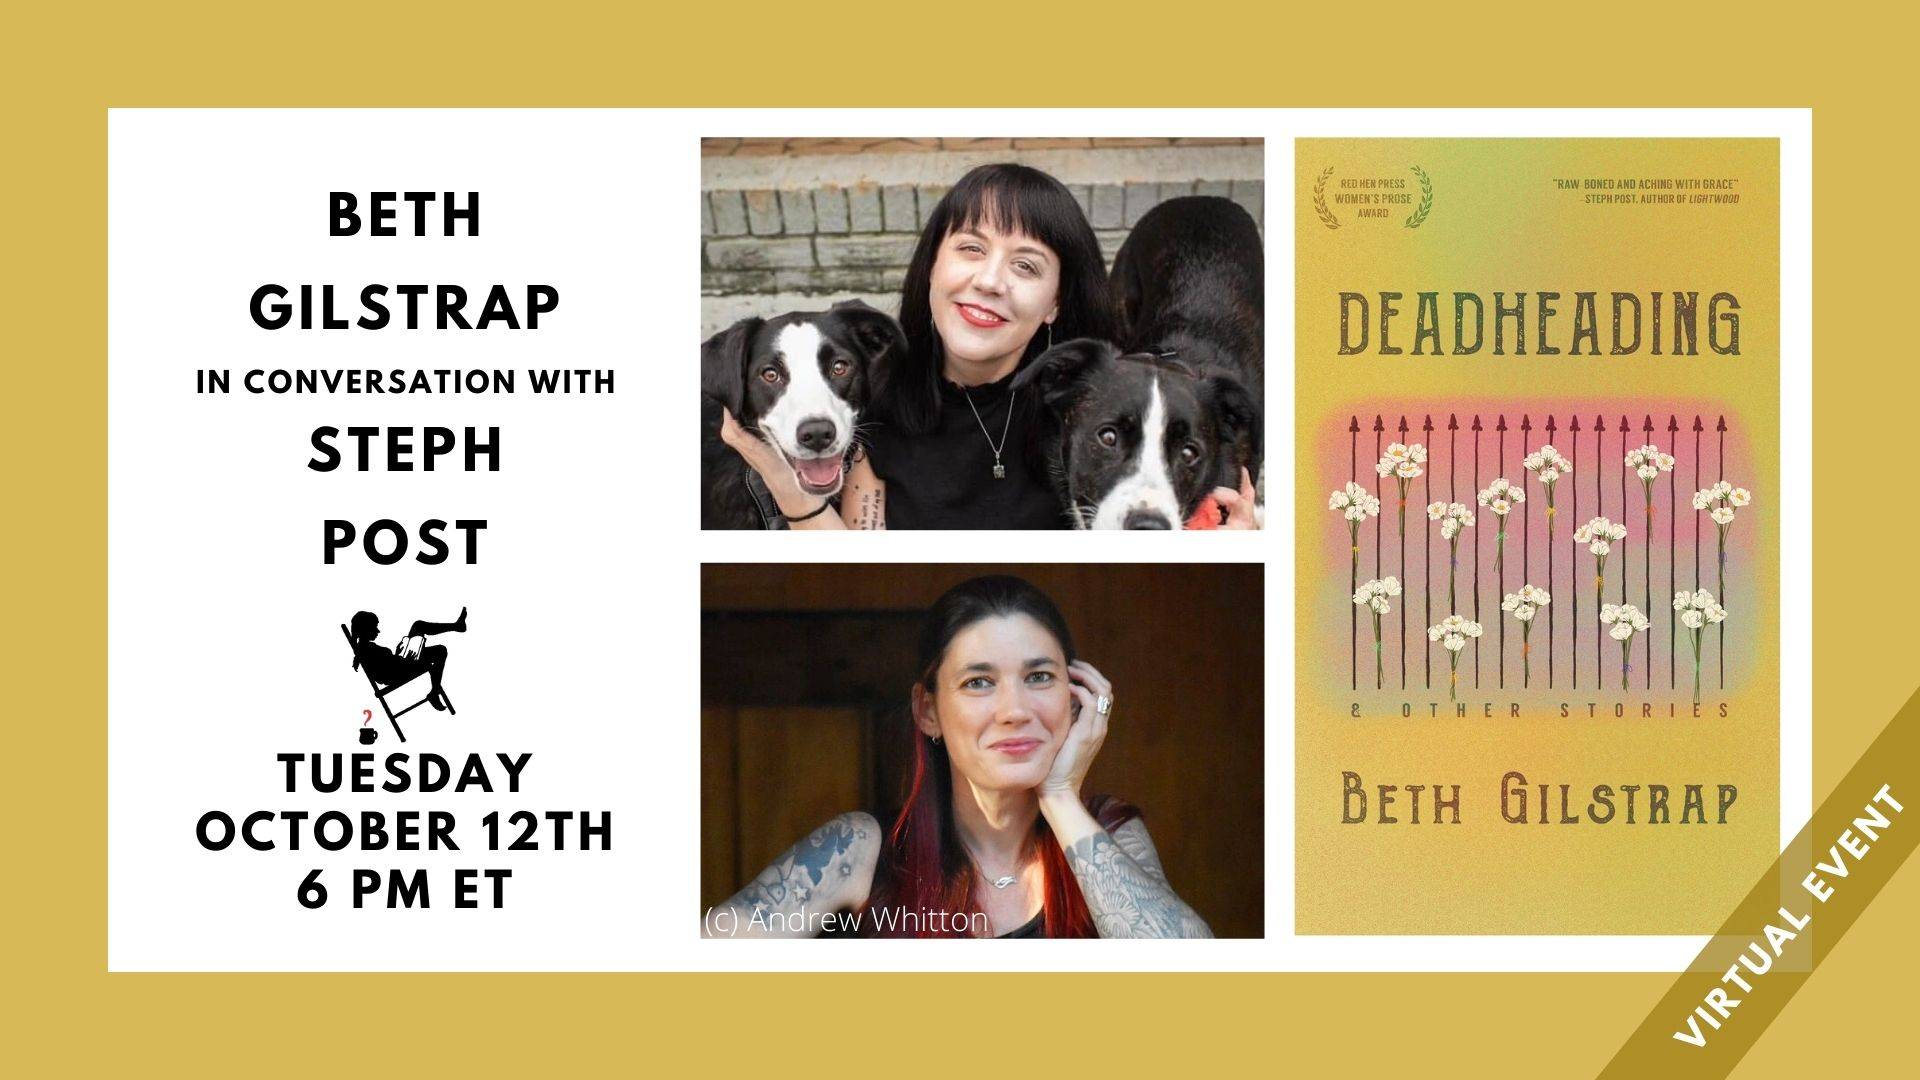 """Image contains text """"Beth Gilstrap in conversation with Steph Post, Tuesday, October 12th at 6pm. Also features headshots of authors and cover image of featured book"""